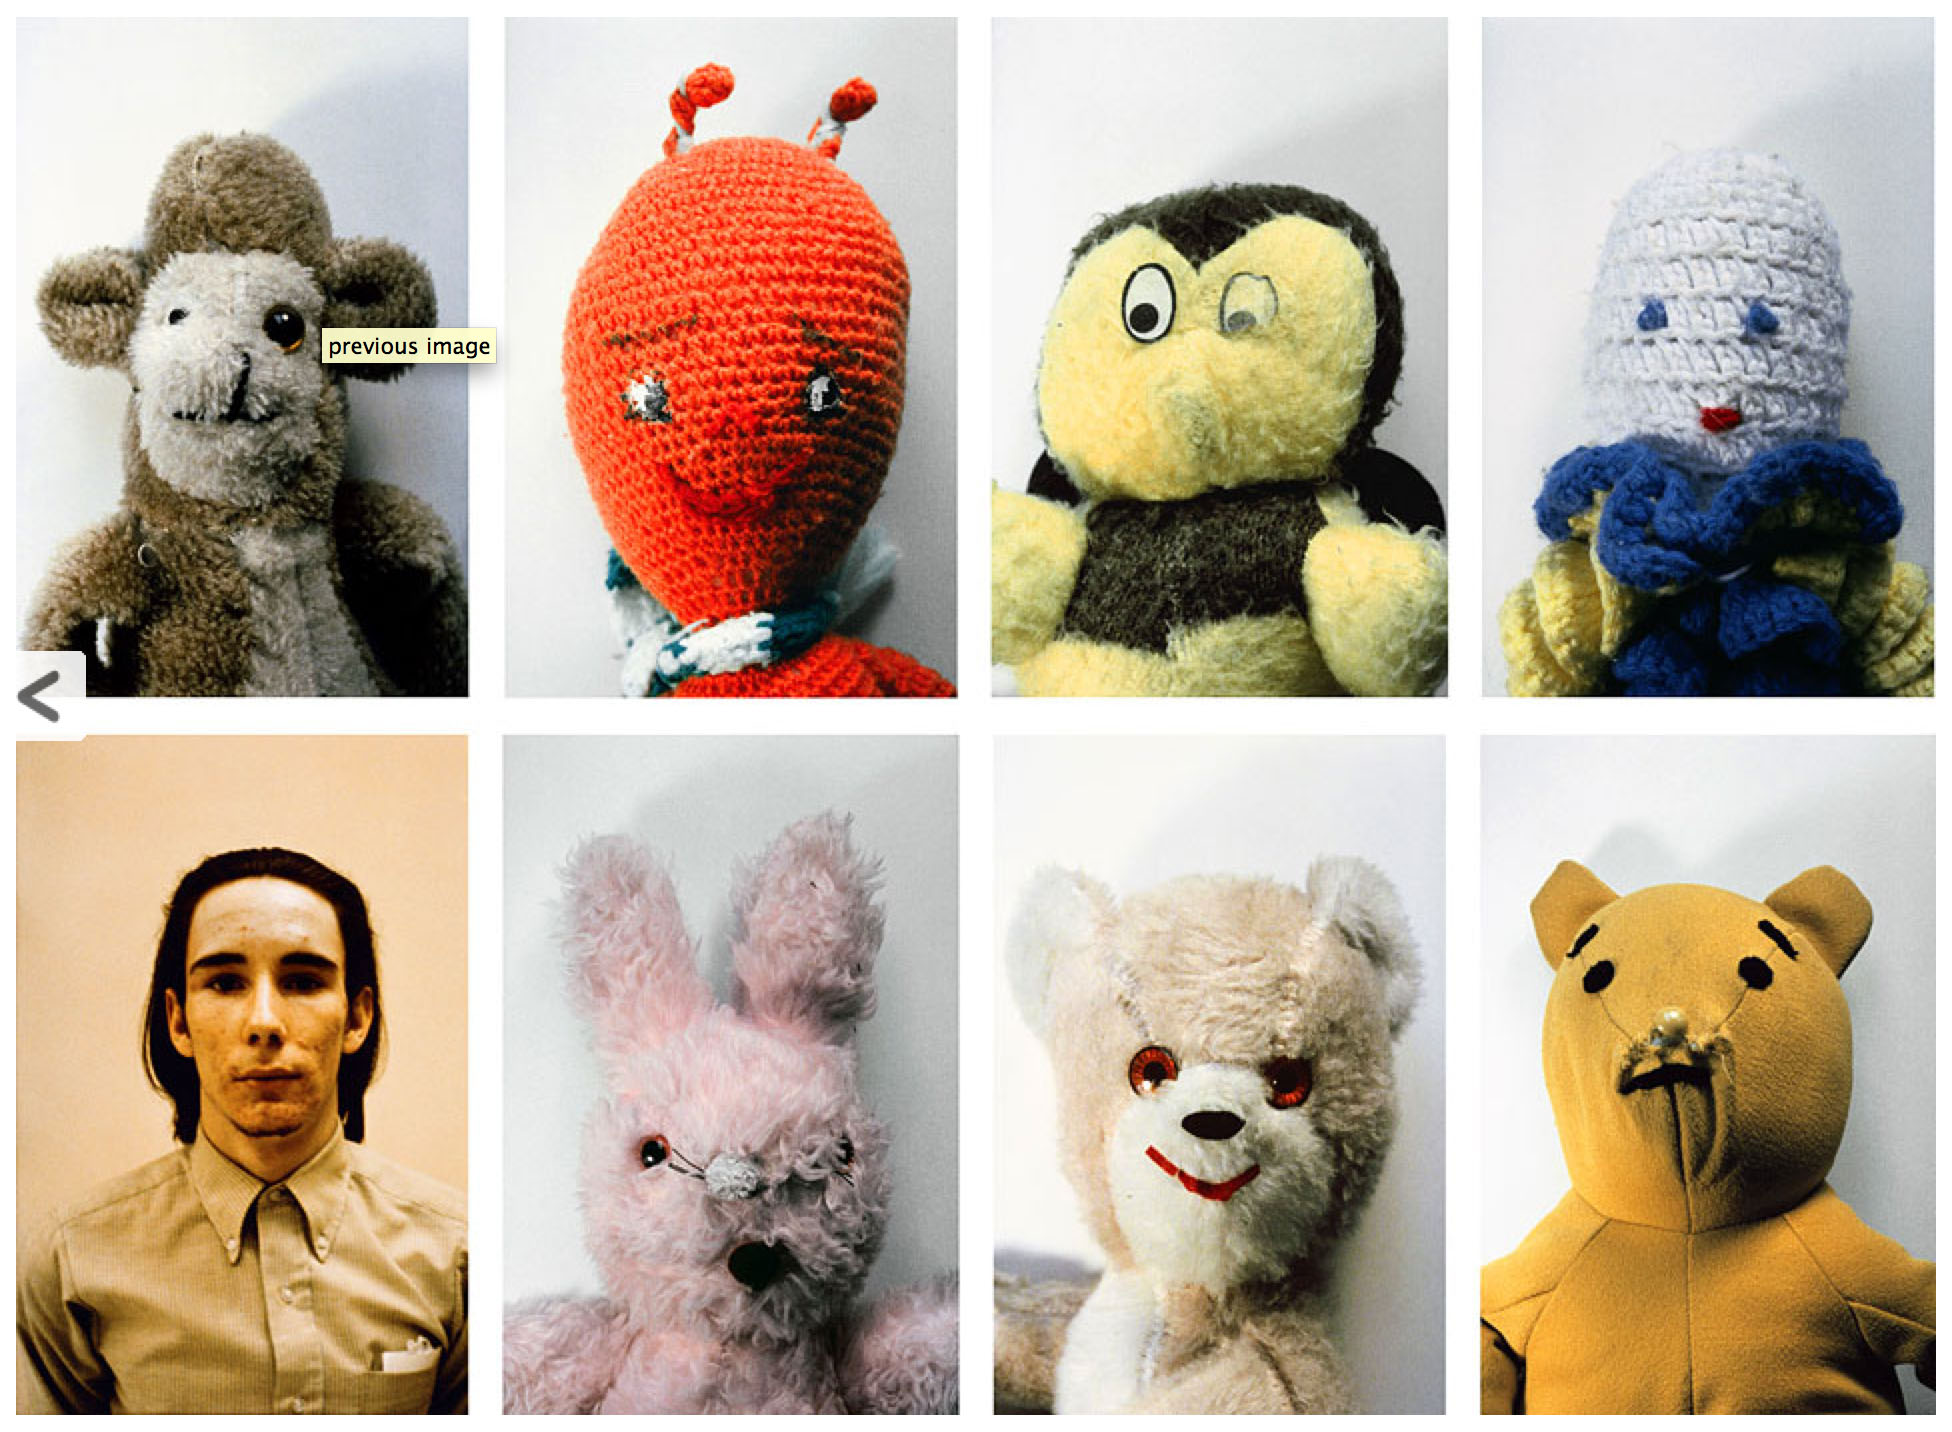 Mike Kelley, Ahh… Youth!, 1991, set of 8 Cibachrome photographs, 24 x 20 in. each; one at 24 x 18 in., Courtesy Mike Kelley Foundation for the Arts.